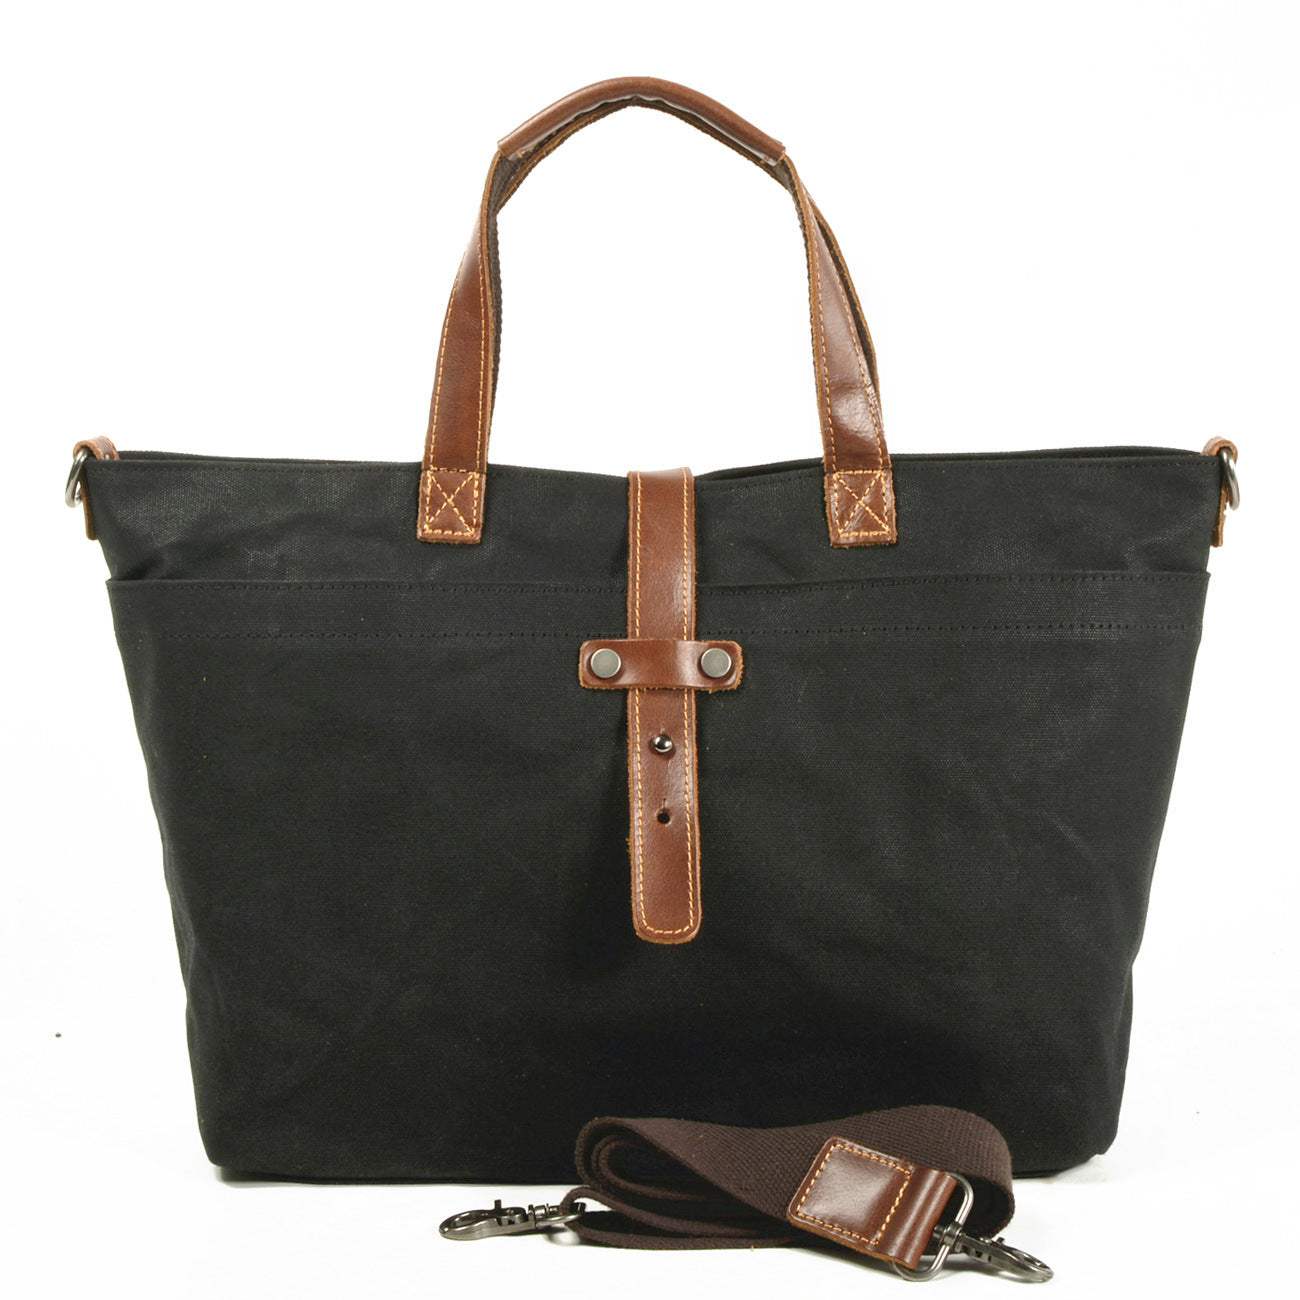 MBL048 Vintage style large capacity waterproof waxed canvas tote bag handbag